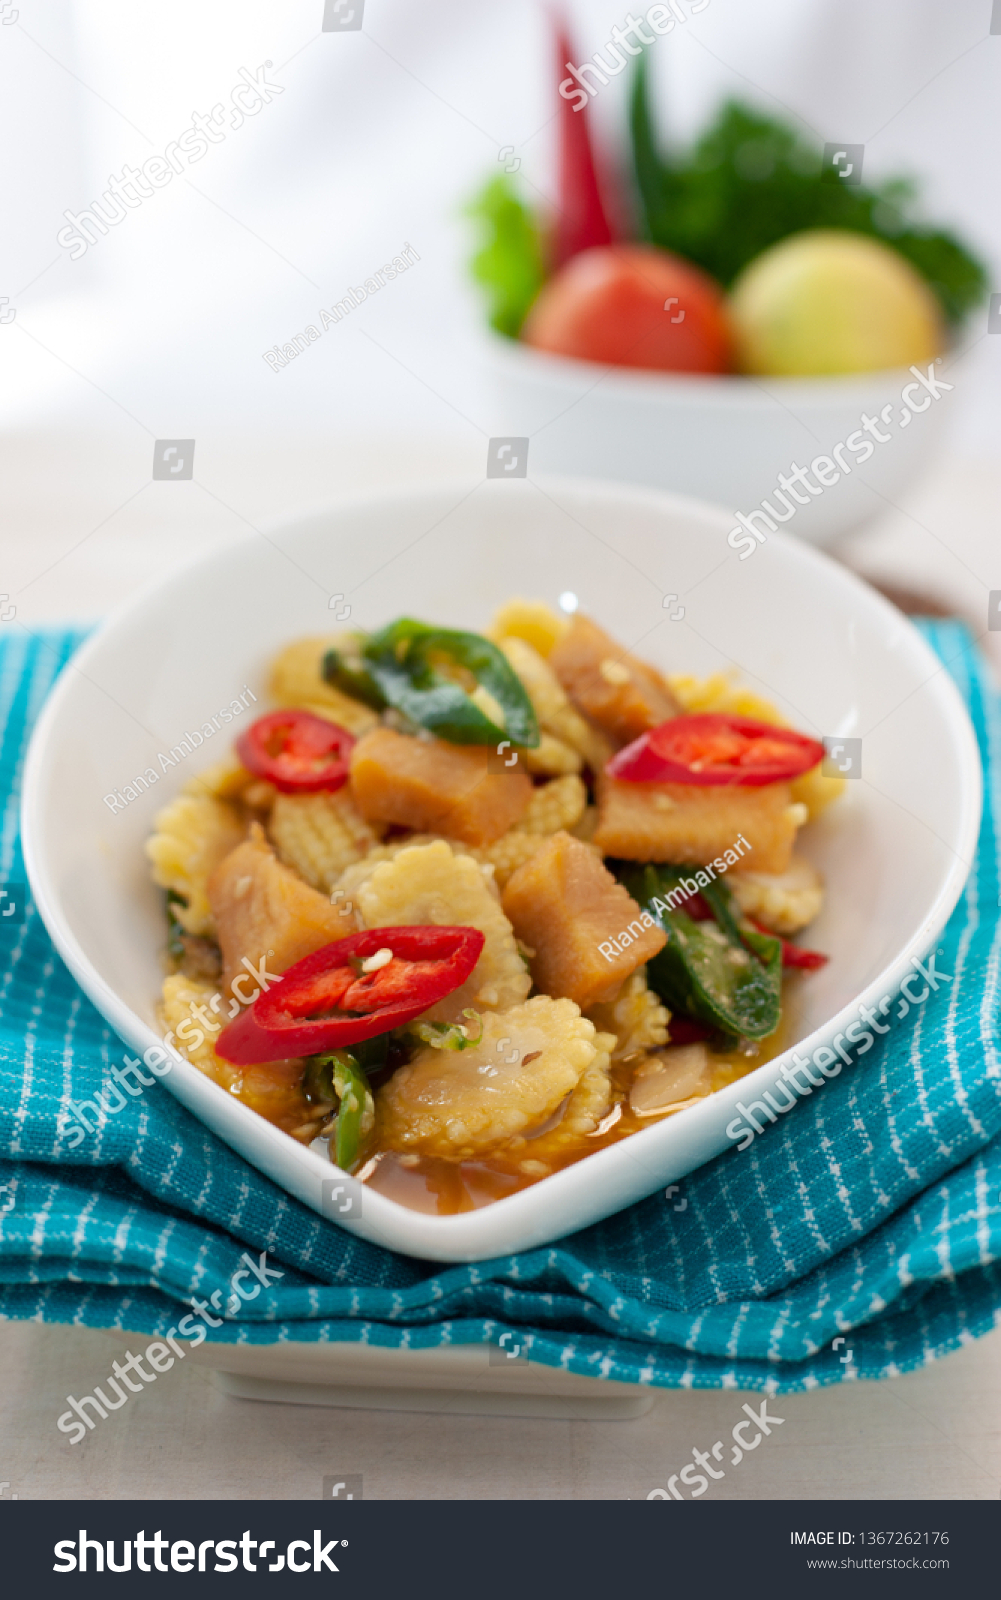 Indonesia Traditional Cuisine Cah Jagung Muda Food And Drink Stock Image 1367262176